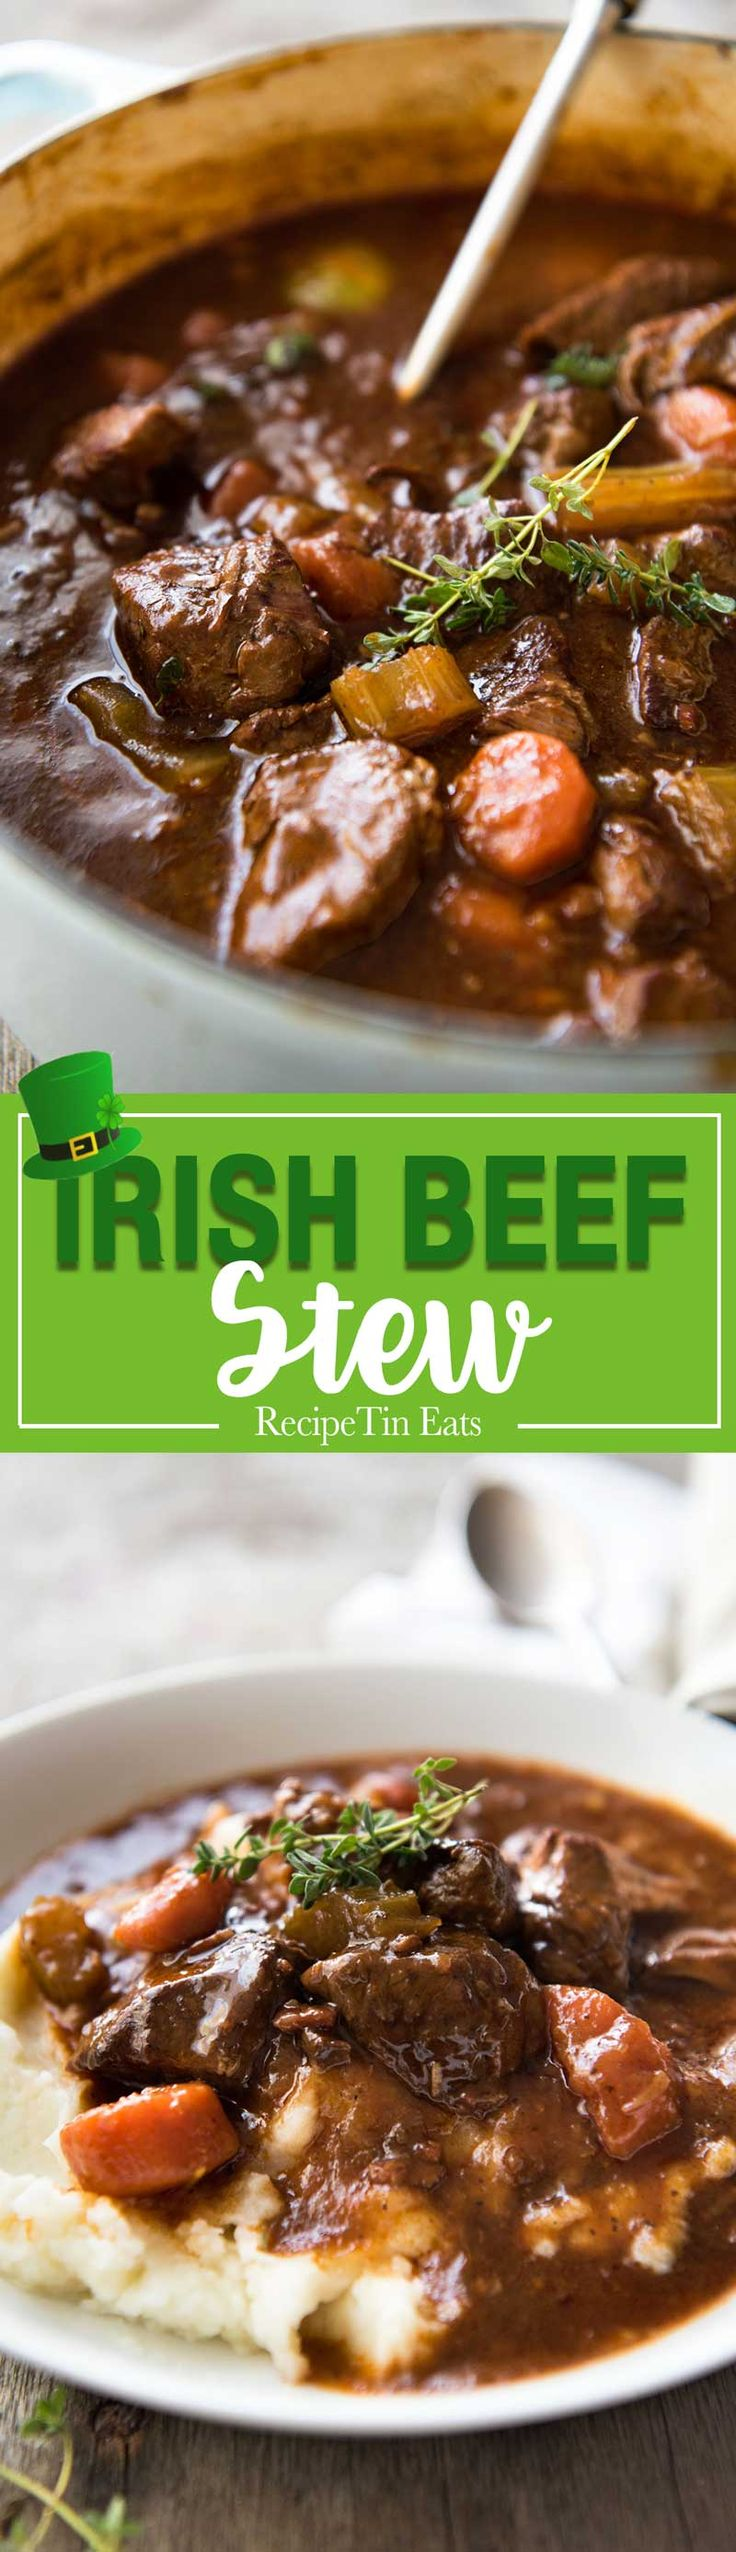 Irish Beef and Guinness Stew - The king of all stews! Fork tender beef in a rich thick sauce. Easy to make, just requires patience! Slow cooker, stove, oven and pressure cooker directions provided. ww (Soup Recipes)